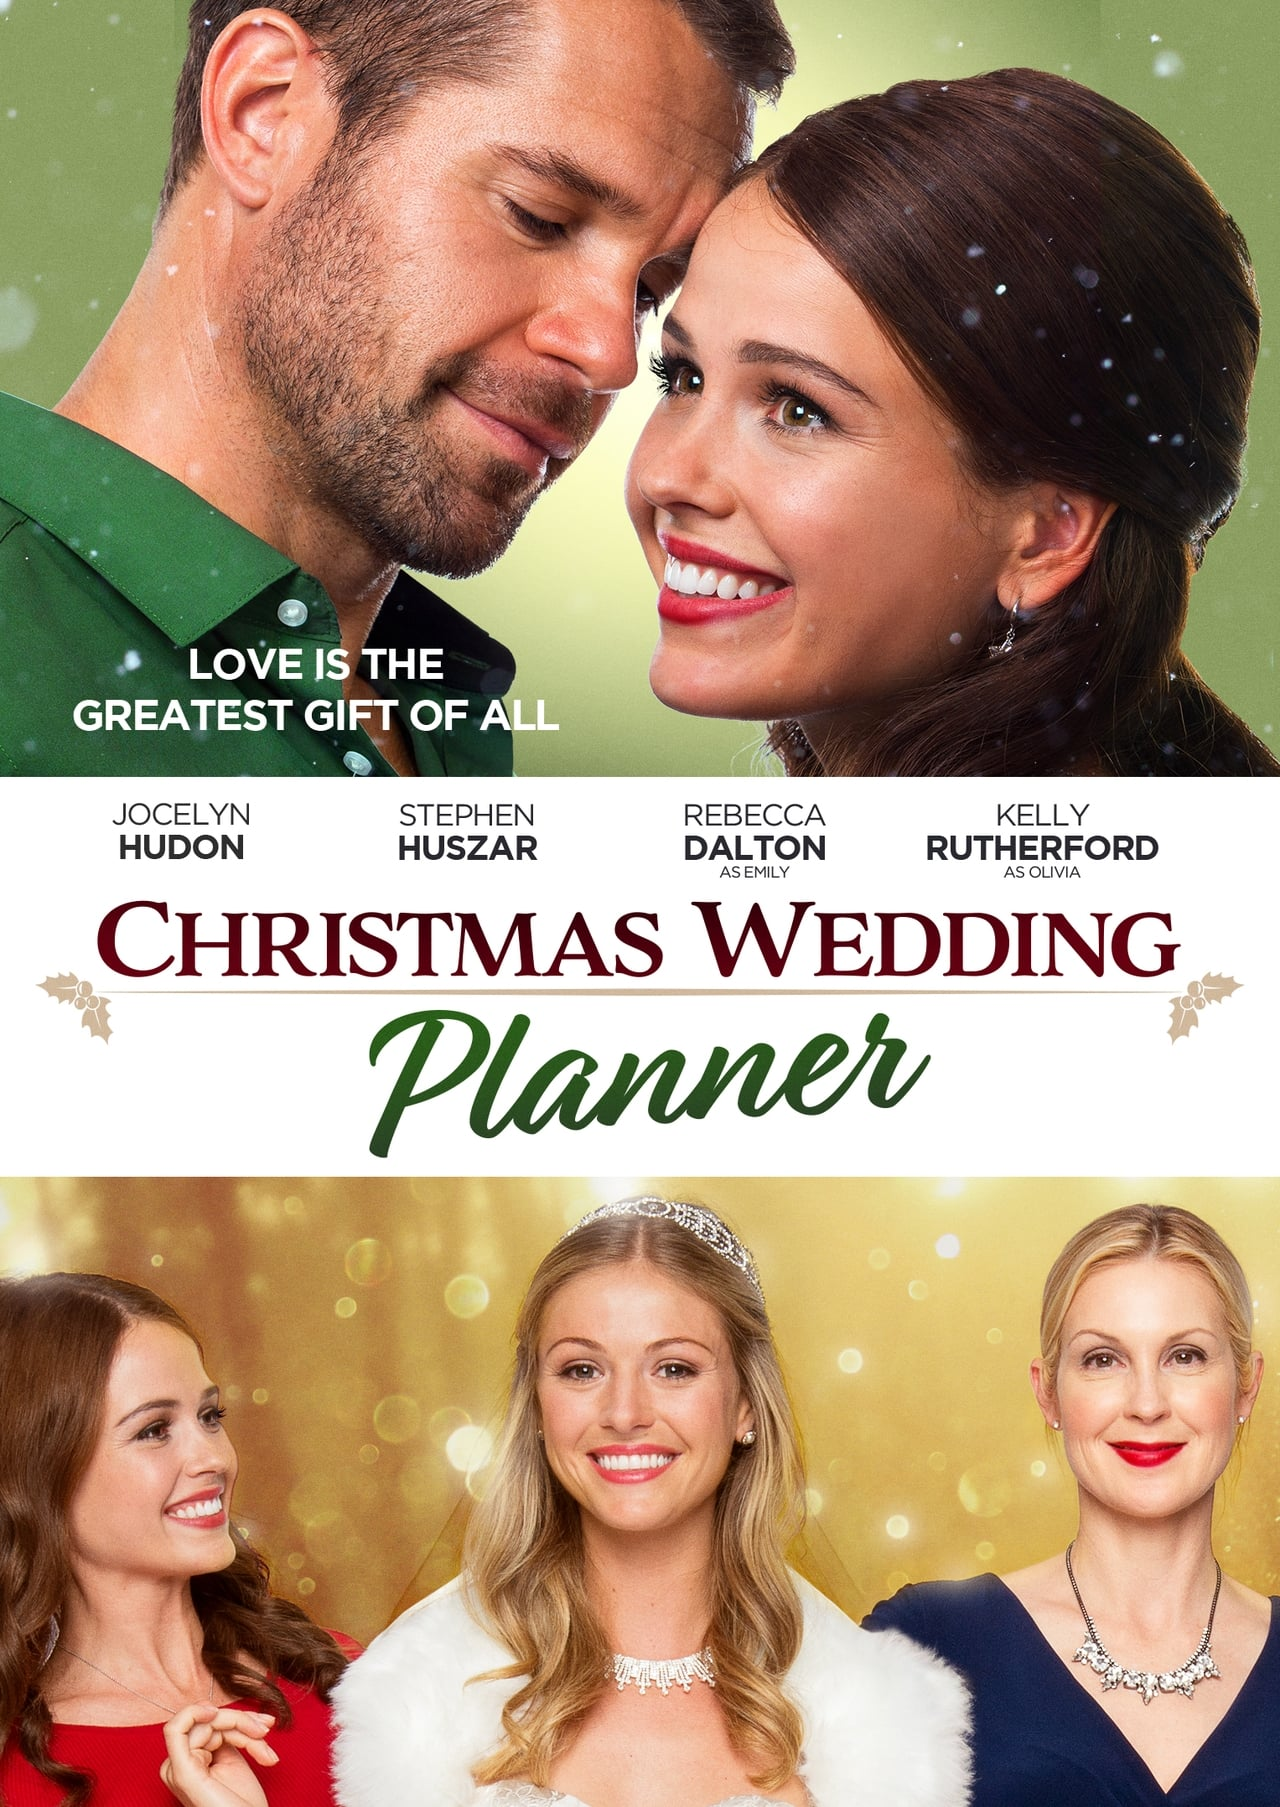 Watch Christmas Wedding Planner Online